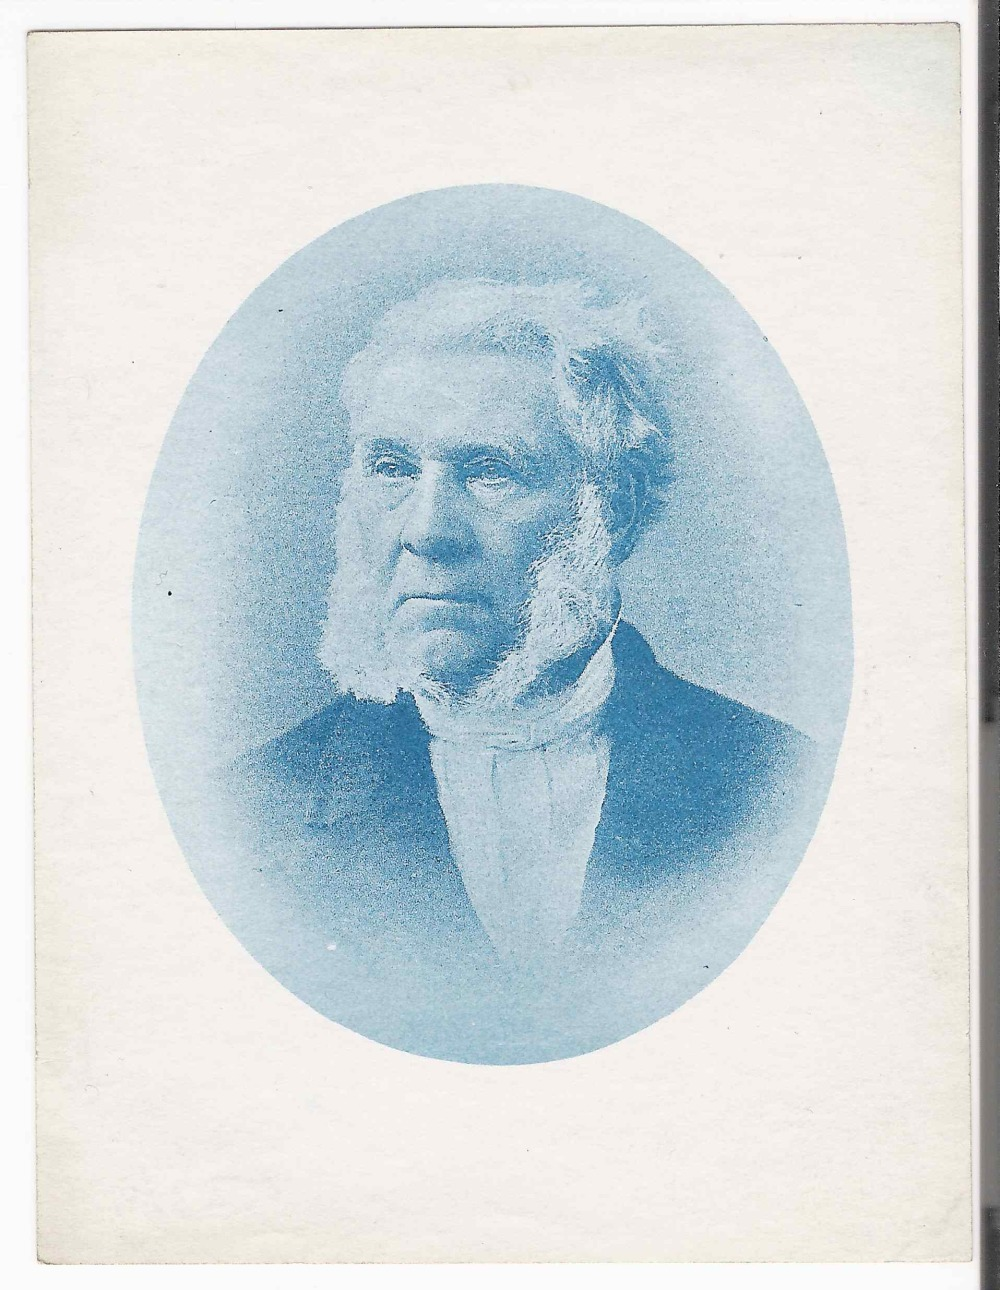 preview image for Photograph (Cyanotype) of a Portrait of James Glaisher, by Washington Teasdale, Probably 1880s